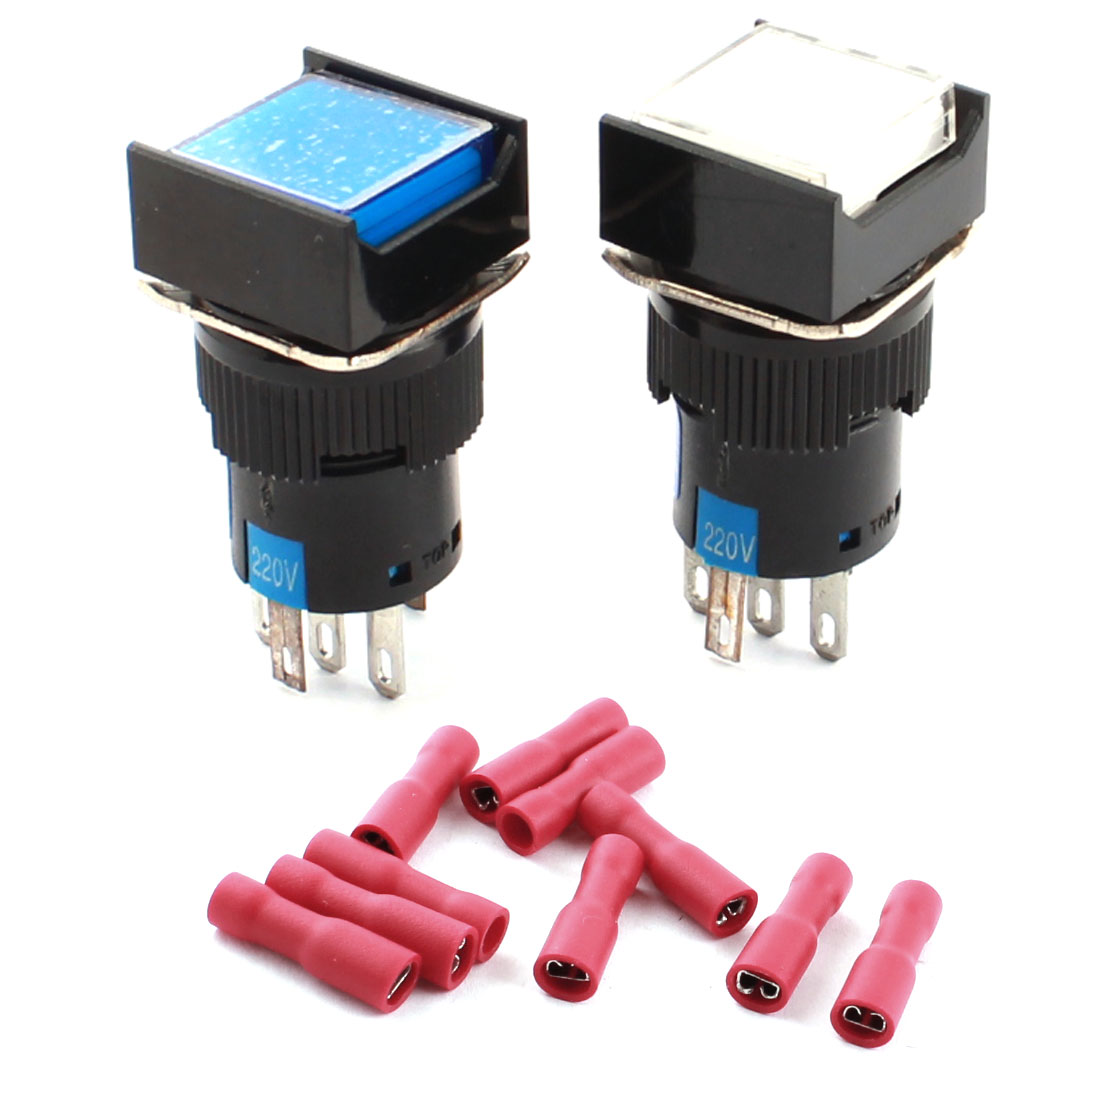 2Pcs AC220V Light White Blue Indicator Rectangle Head SPDT 5 Pins Locking Pushbutton Switchs w Female Connectors